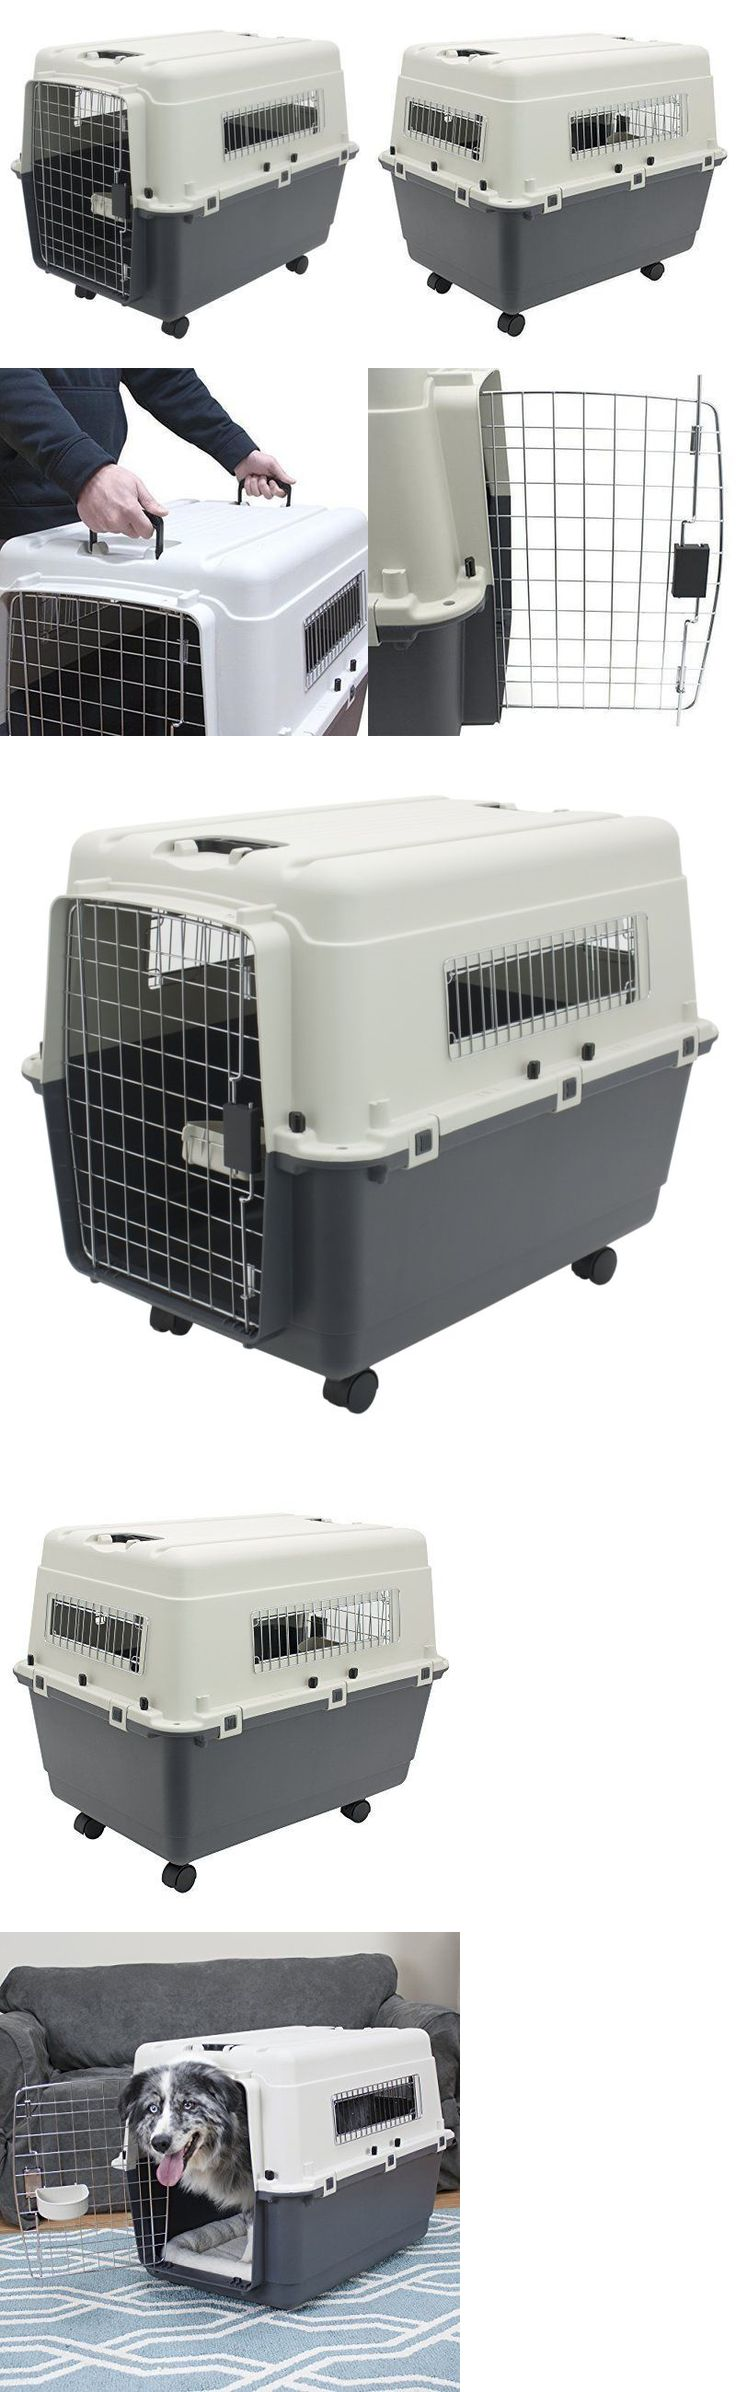 Cages and Crates 121851: Xl Dog Crate Large Airline Approved Pet Kennel Rolling Comfort Dogs Travel Cage -> BUY IT NOW ONLY: $87.45 on eBay!